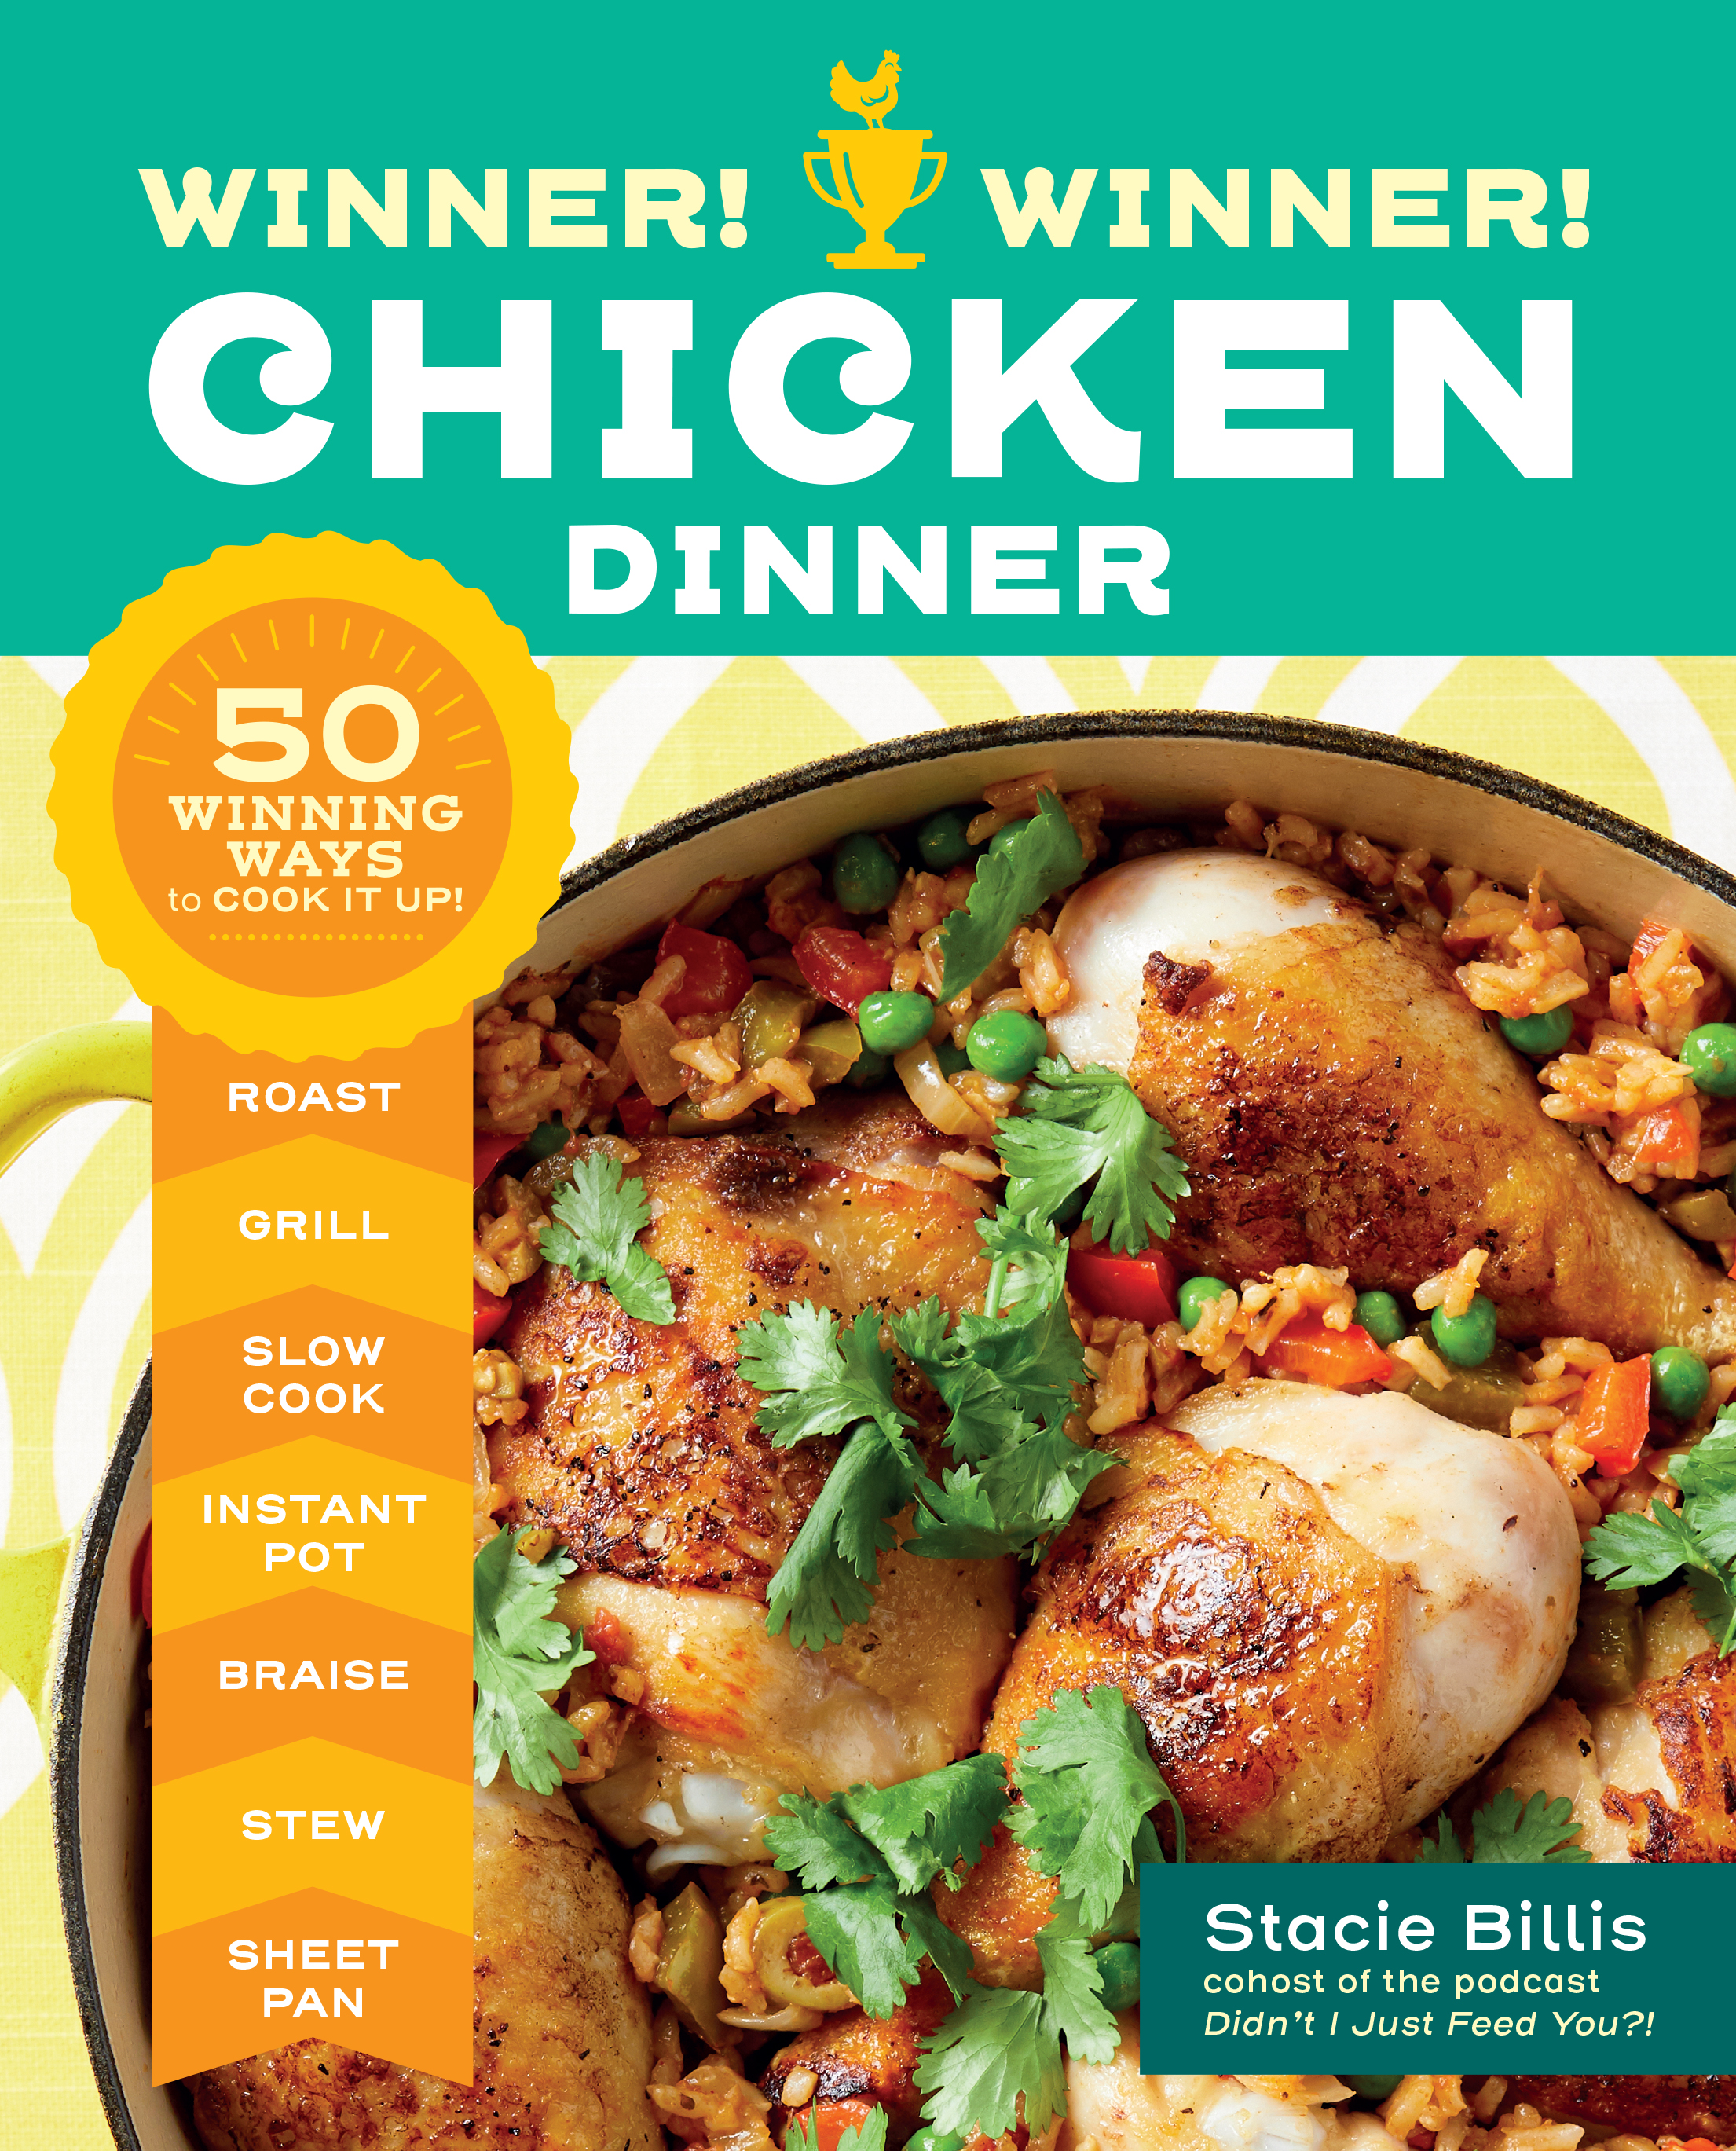 Winner! Winner! Chicken Dinner 50 Winning Ways to Cook It Up! - Stacie Billis